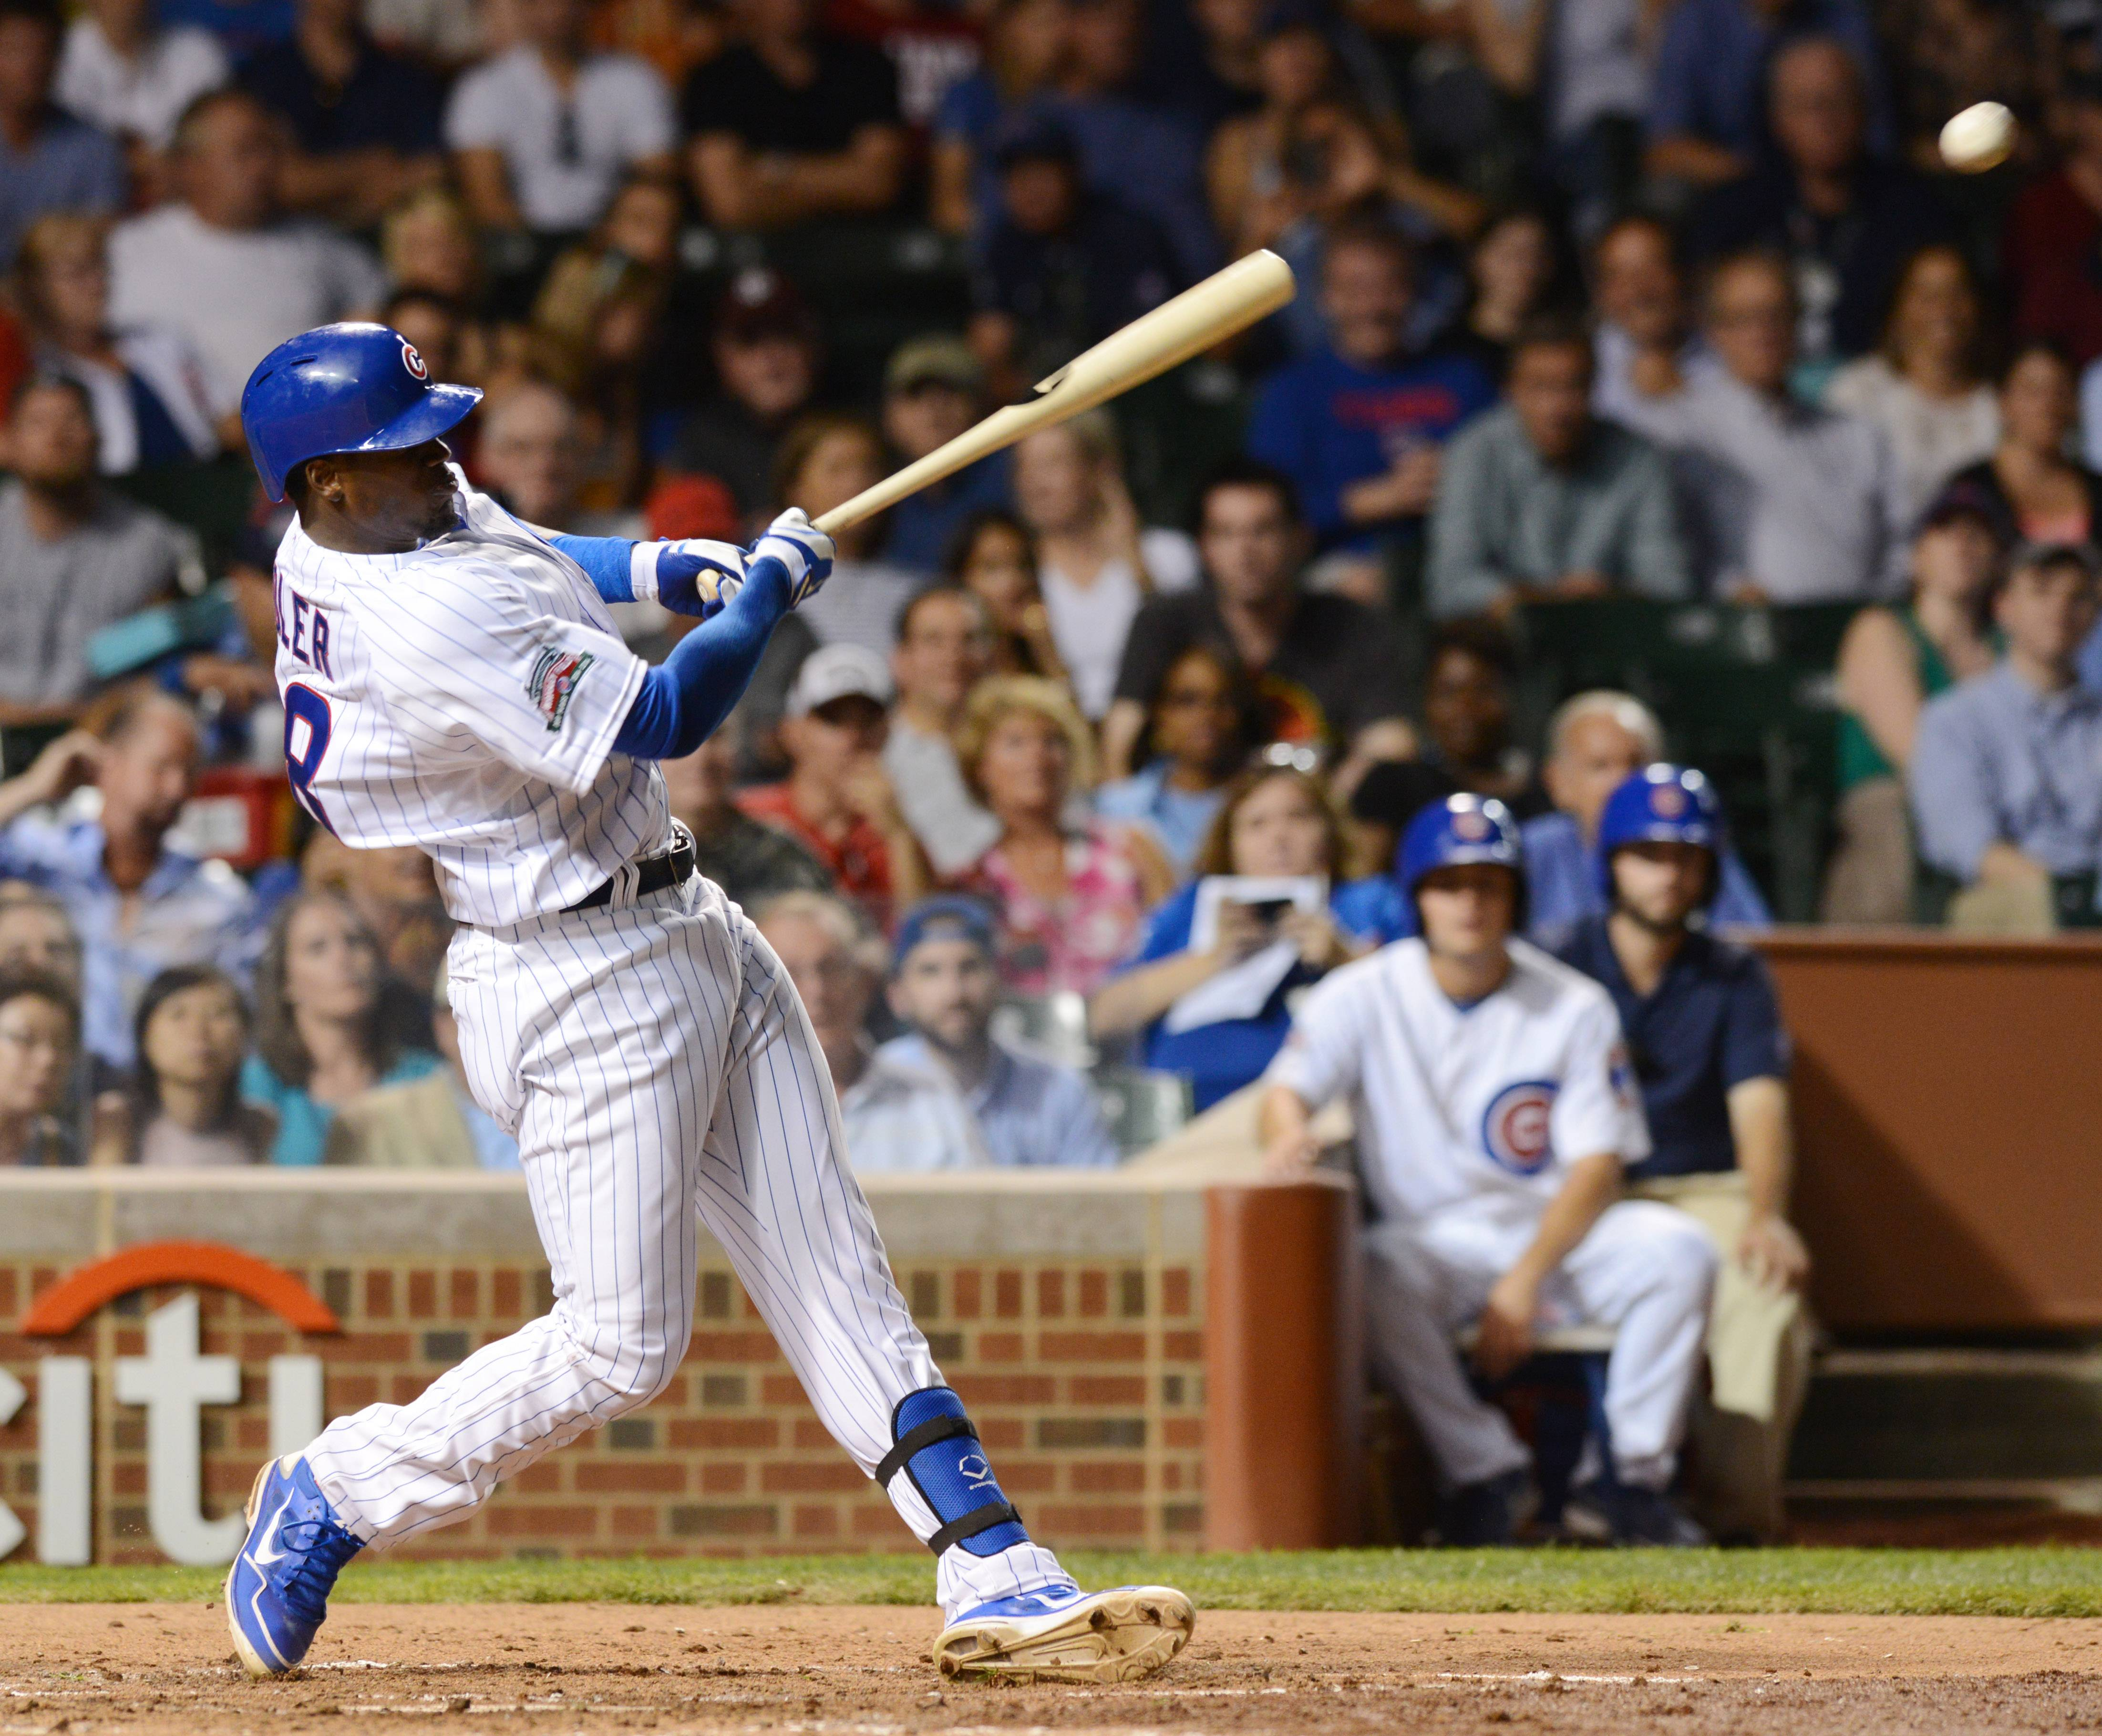 Baez, Soler on center stage for Cubs